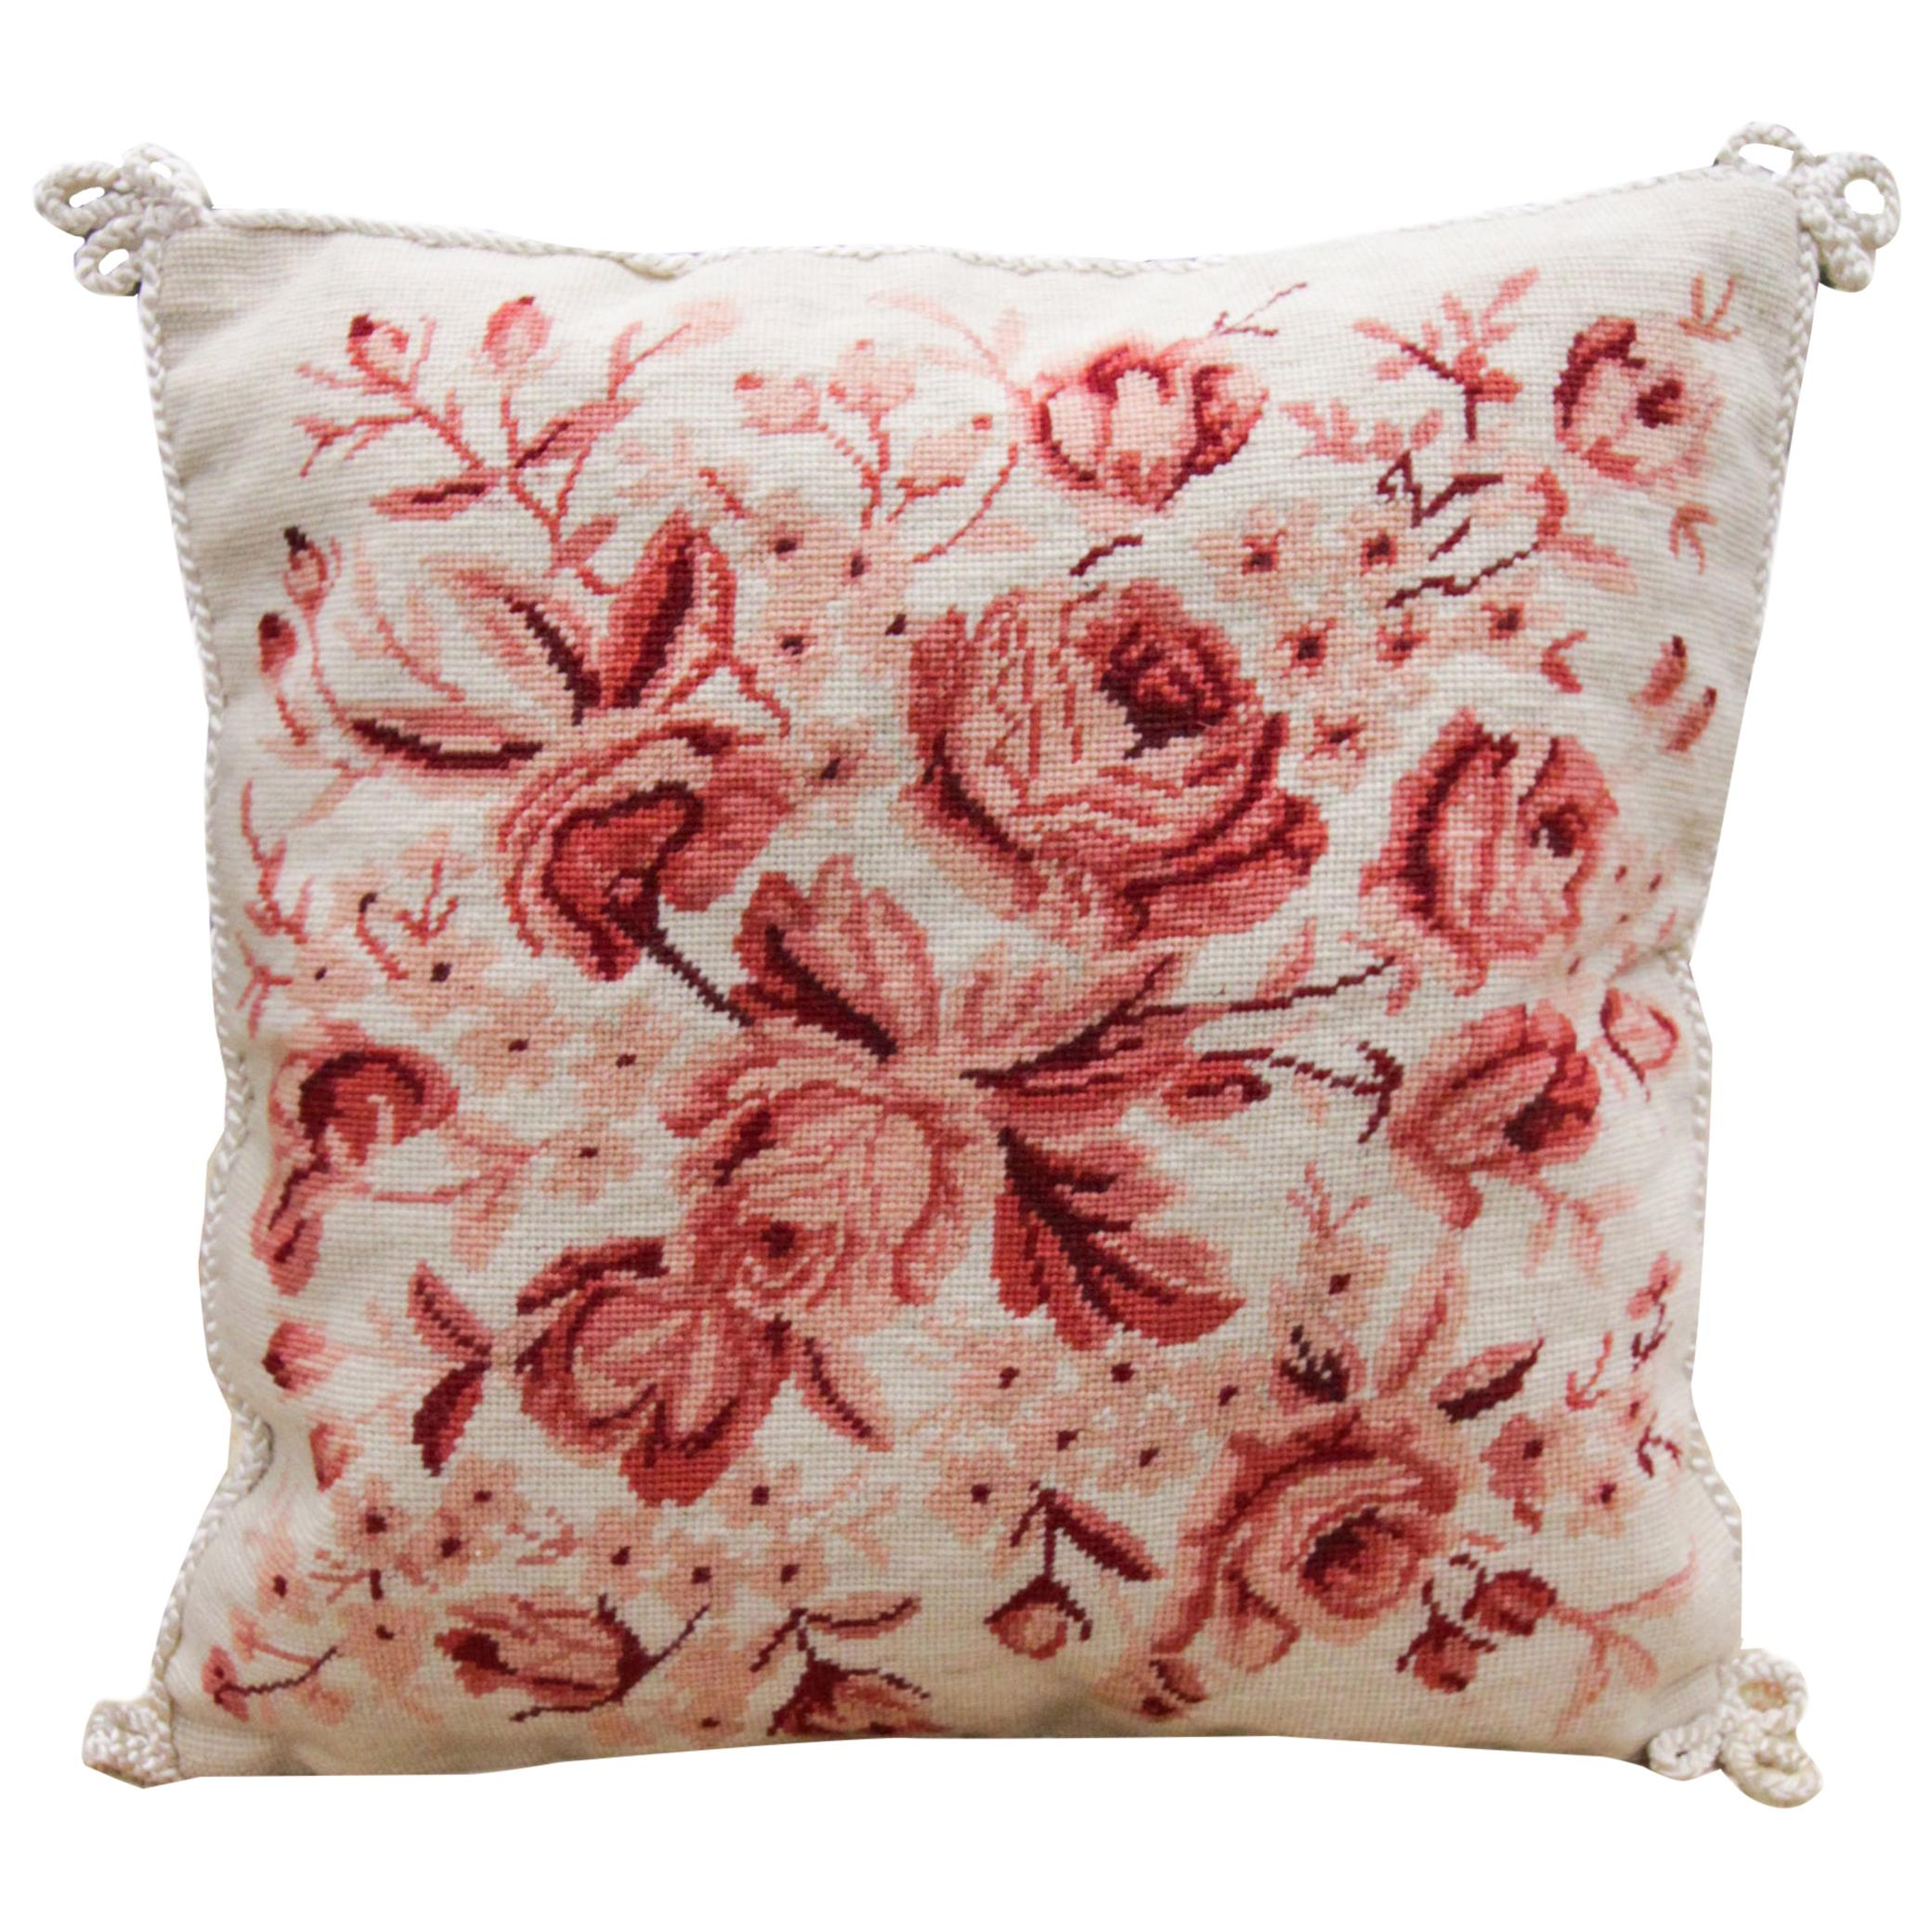 Handmade Cushion Cover Floral Needlepoint Scatter Pillow Cover